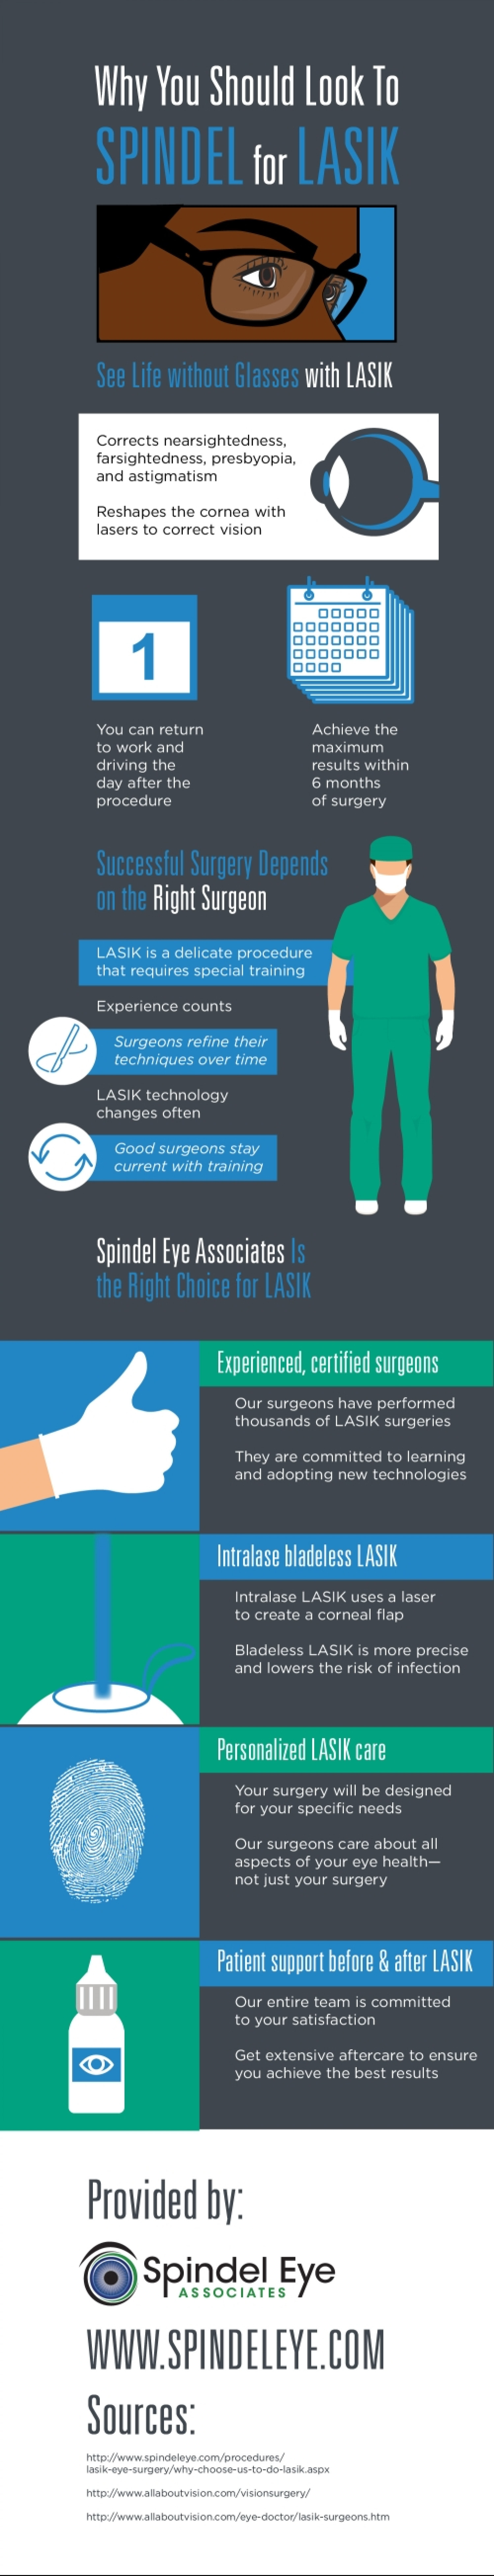 Why You Should Look to Spindel for LASIK Infographic